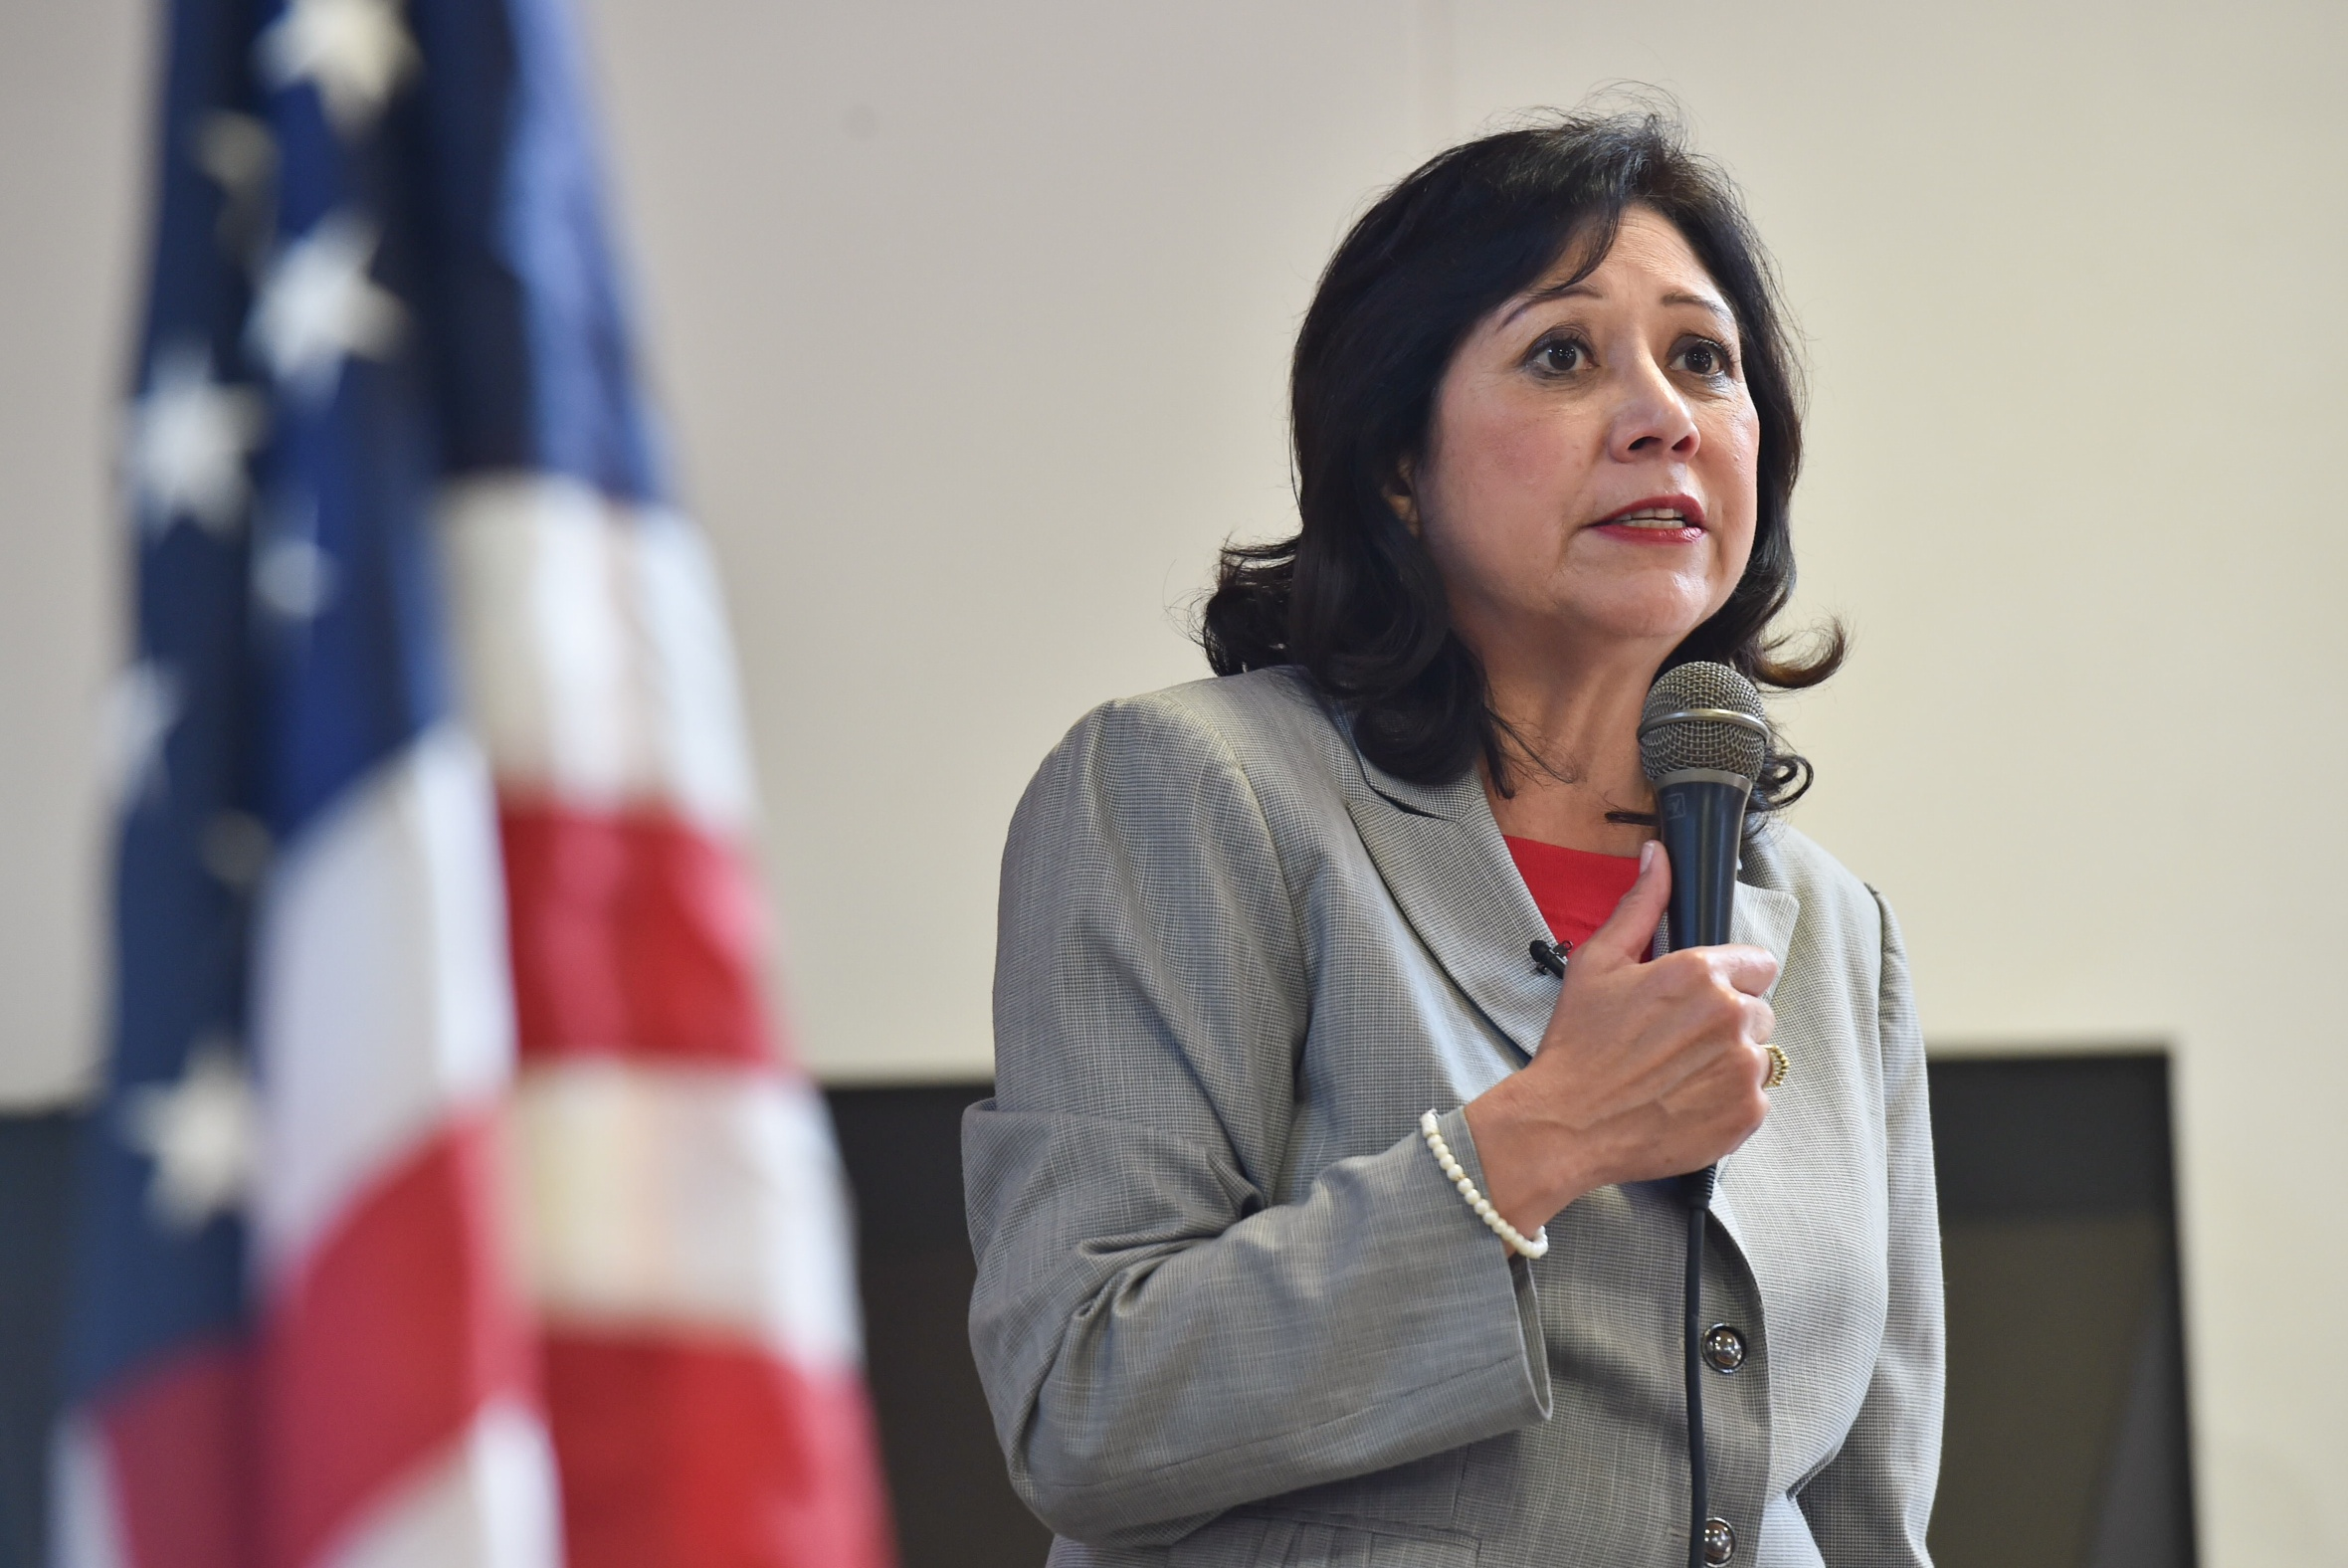 Hilda L. Solis Statement in Response to High Number of Suicides Among Female Veterans